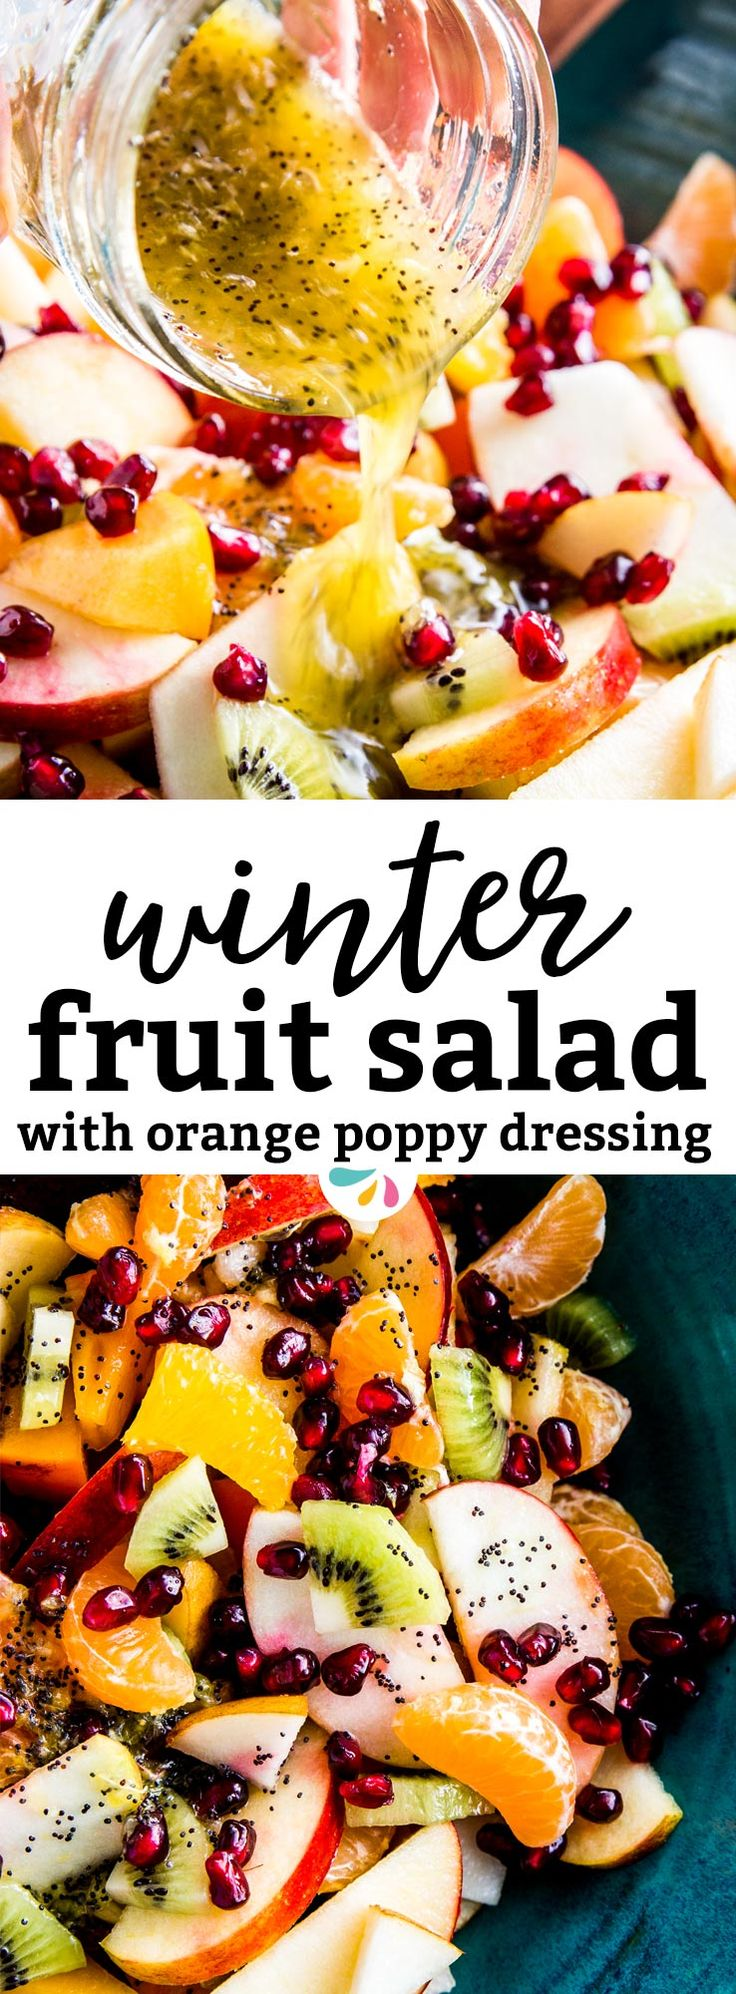 This Winter Fruit Salad is a great way to eat fresh fruit during the colder months. It makes a healthy addition to any Christmas, New Year's or other holiday gathering. It's so quick and easy to make and the dressing tastes absolutely delicious! Learn three tips to make a foolproof fruit salad here: | #recipes #healthy #healthyrecipes